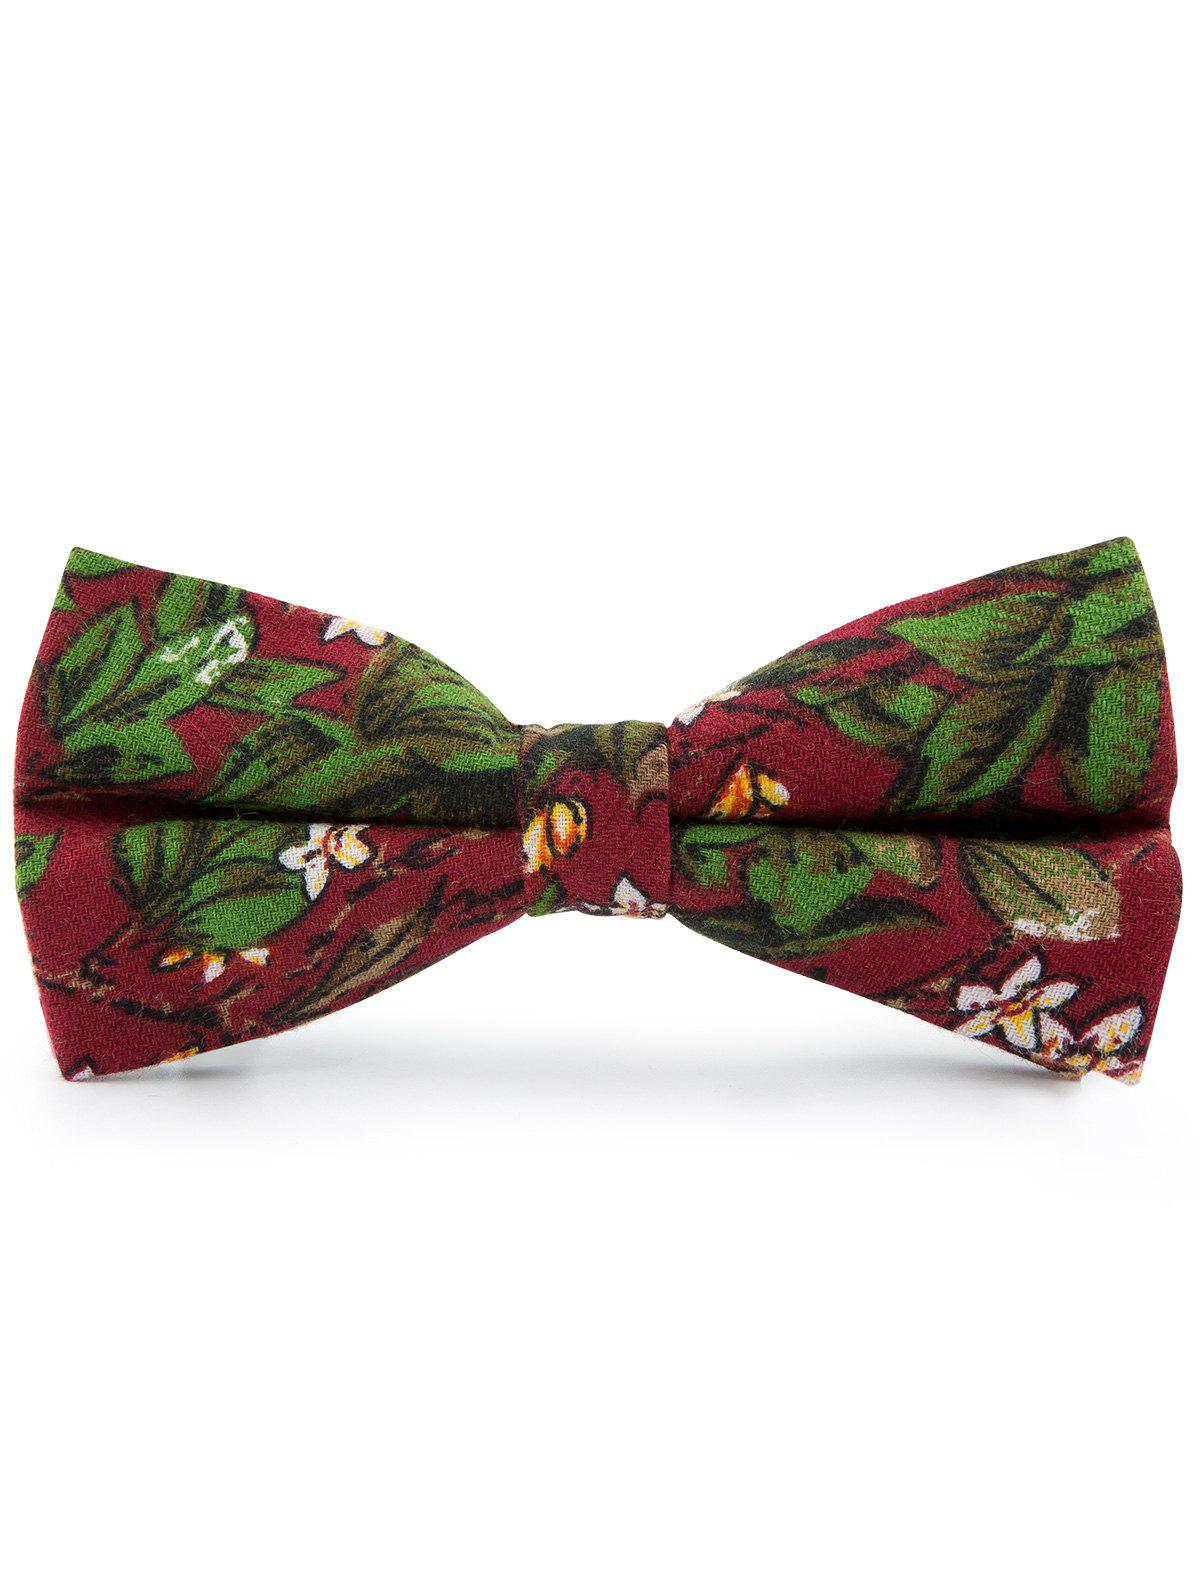 Fancy Cotton Blend Tiny Floral Pattern Bow Tie